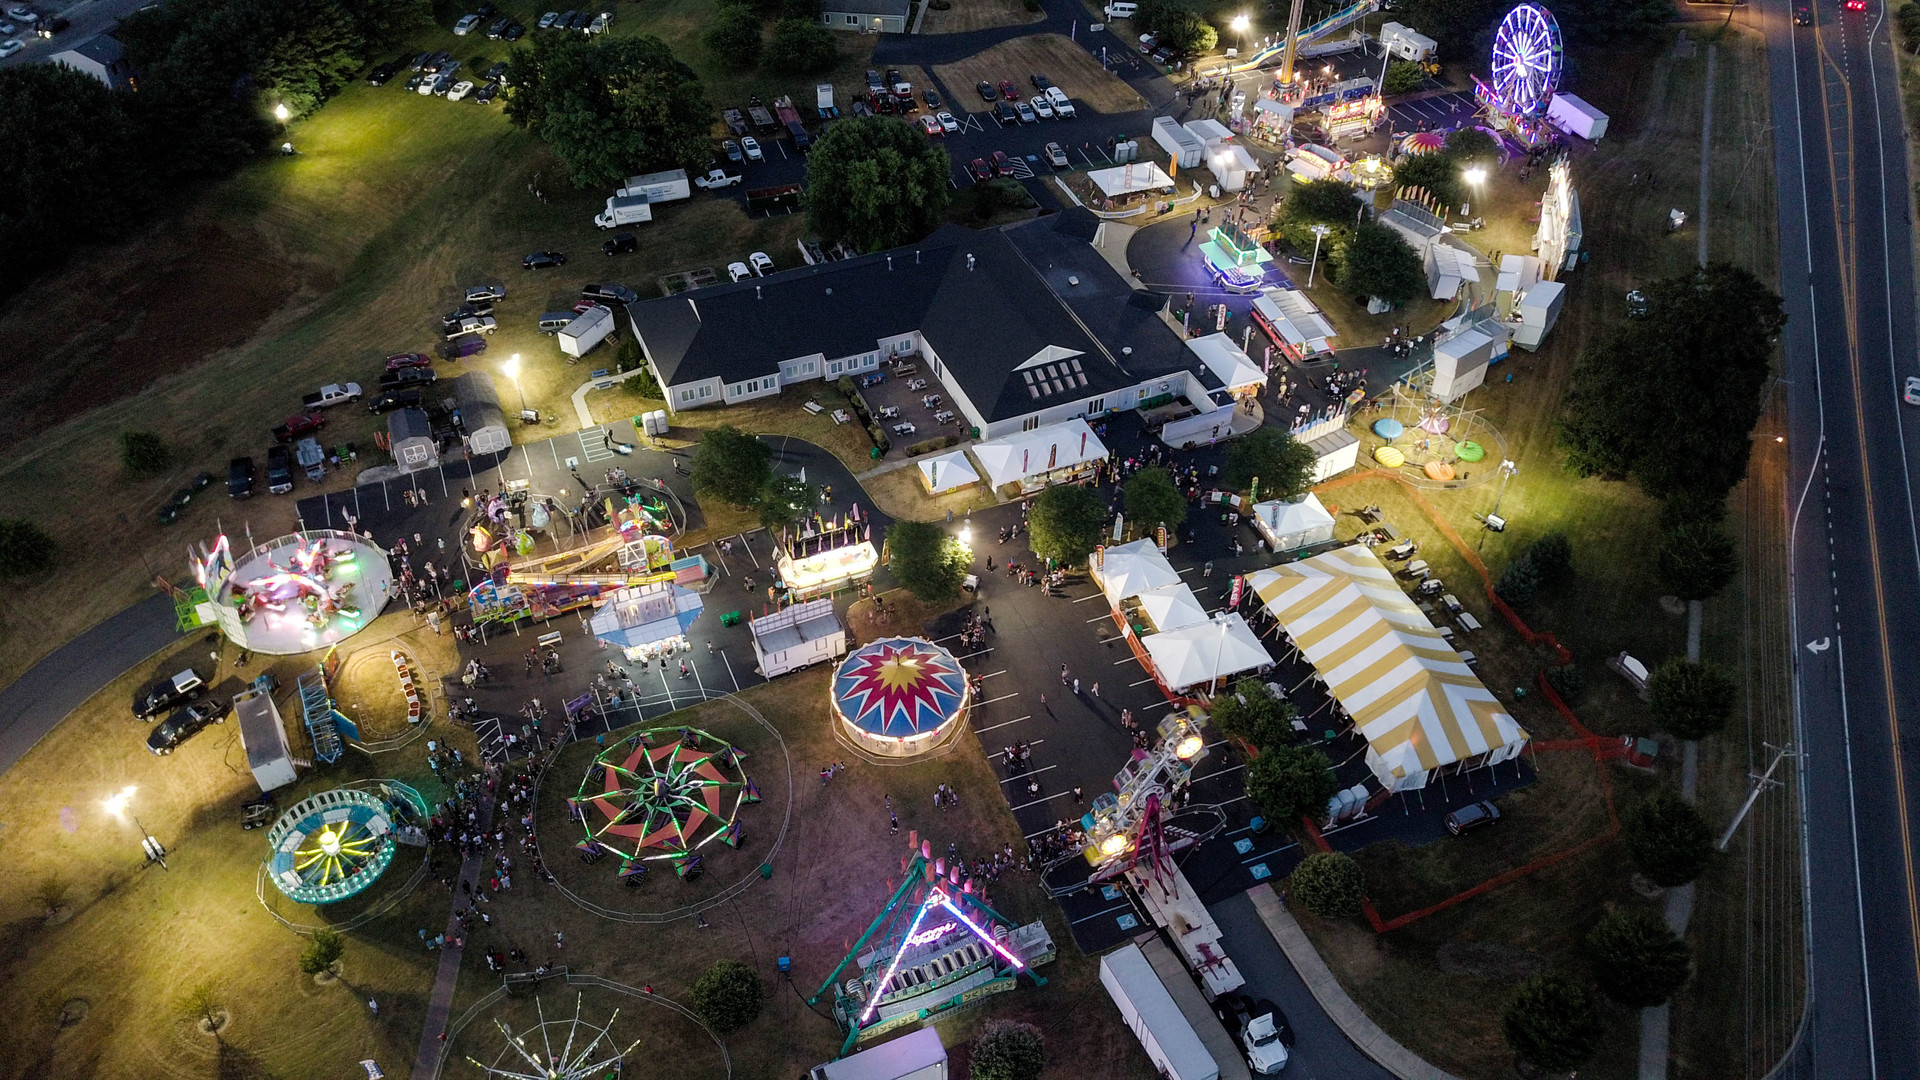 Saint Joseph's Church Carnival